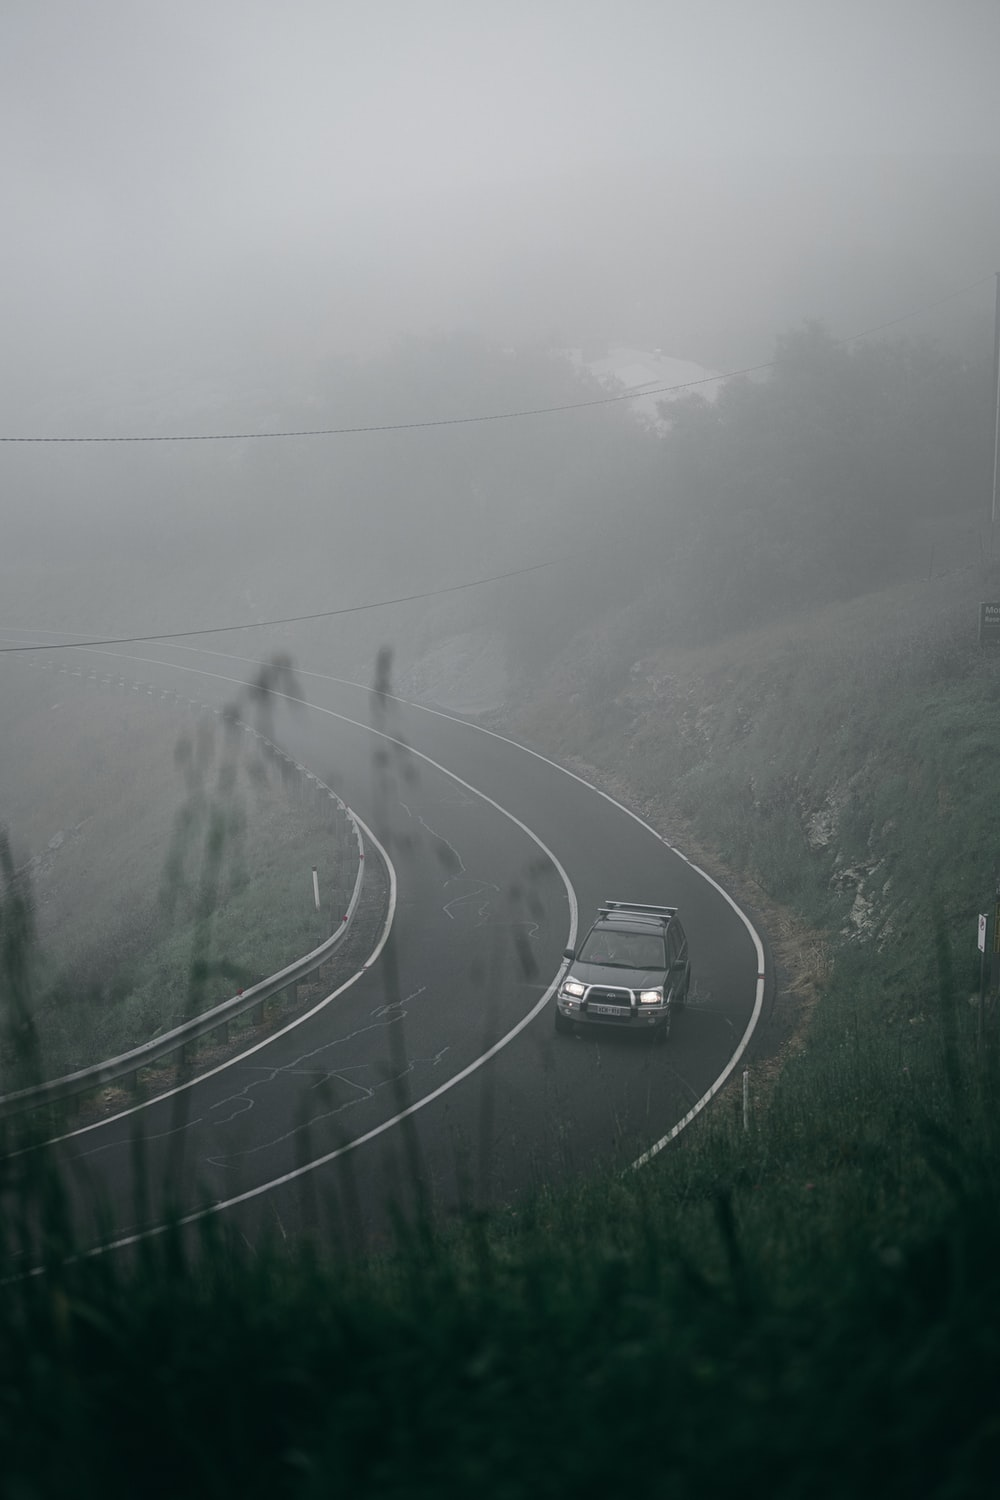 cars on road between green grass field during foggy weather